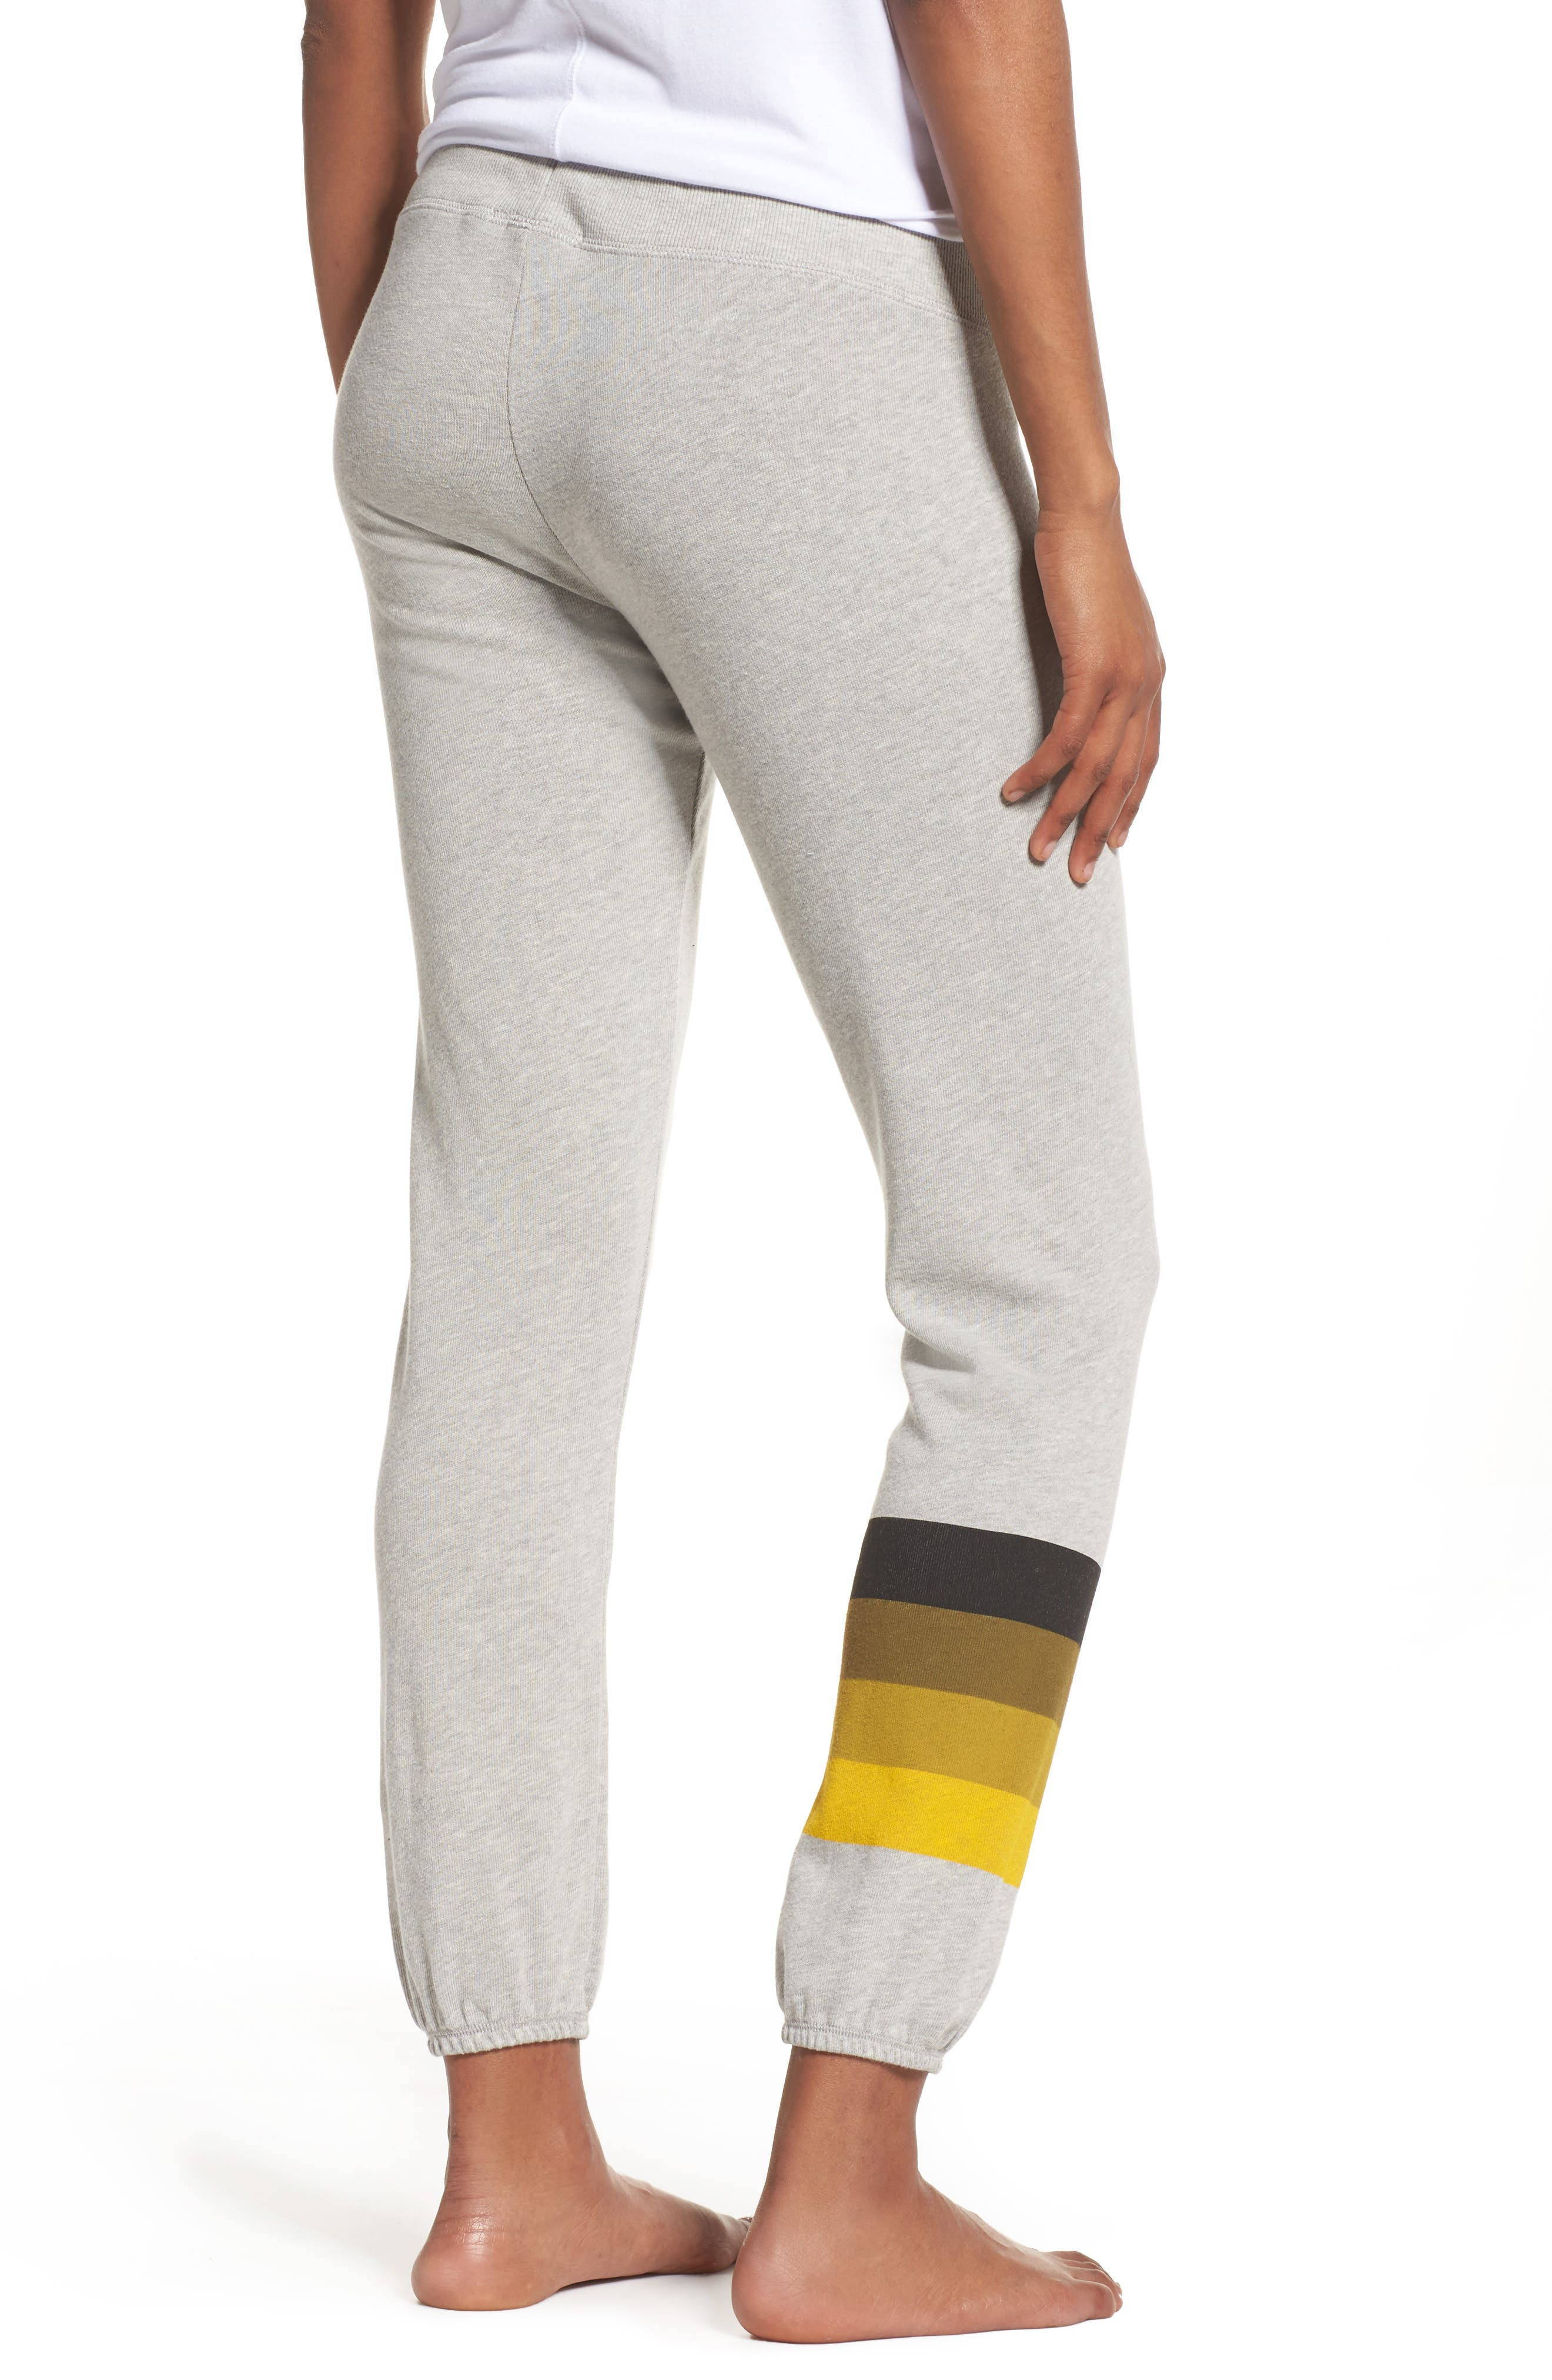 NFL Pittsburgh Steelers Hacci Sweatpants,                             Alternate thumbnail 2, color,                             Dove Heather Grey